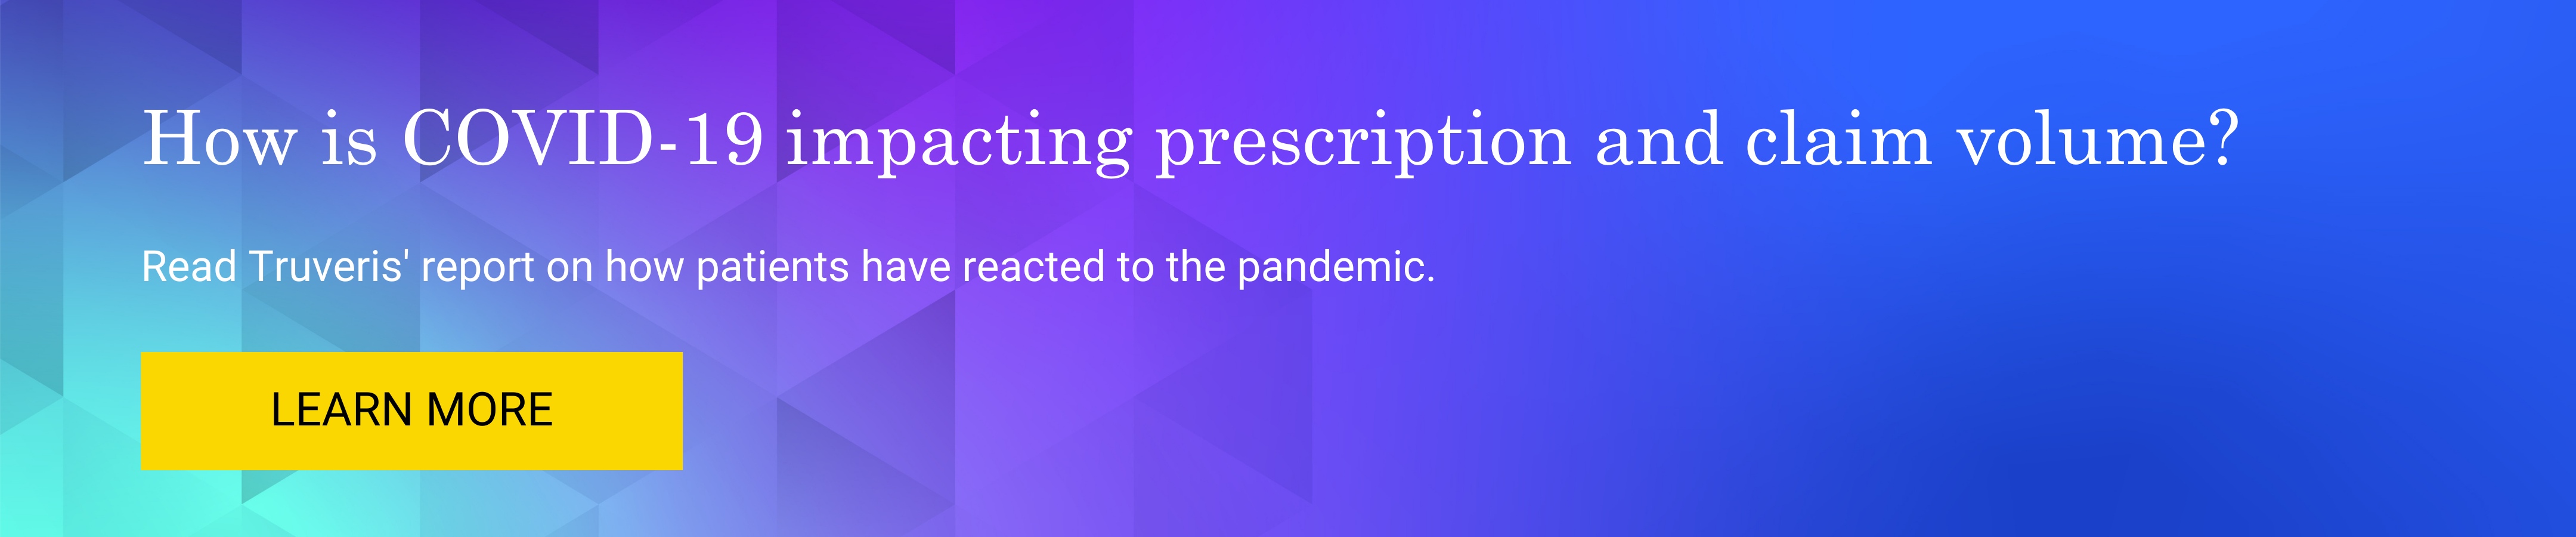 Read Truveris' report on how COVID-19 is affecting prescriptions and claims.